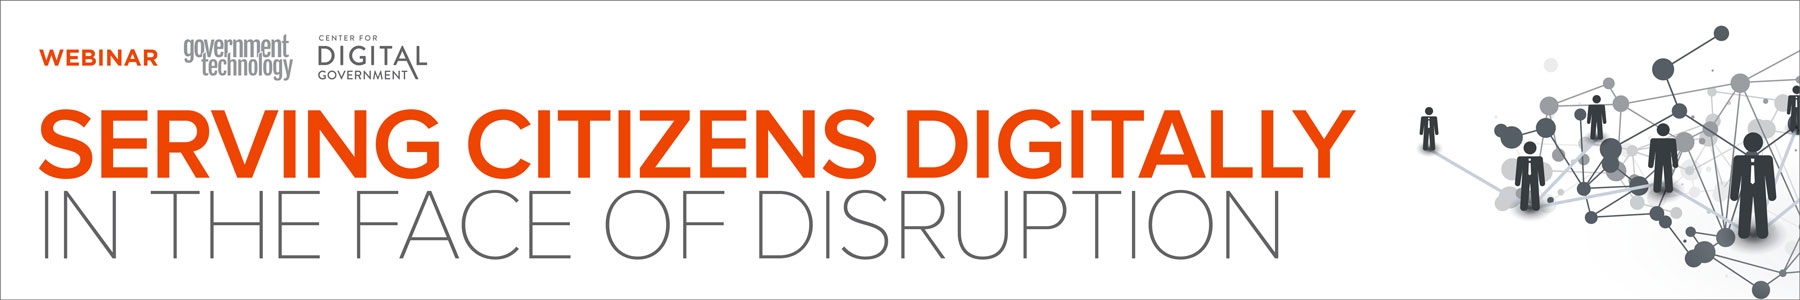 Serving Citizens Digitally in the Face of Disruption